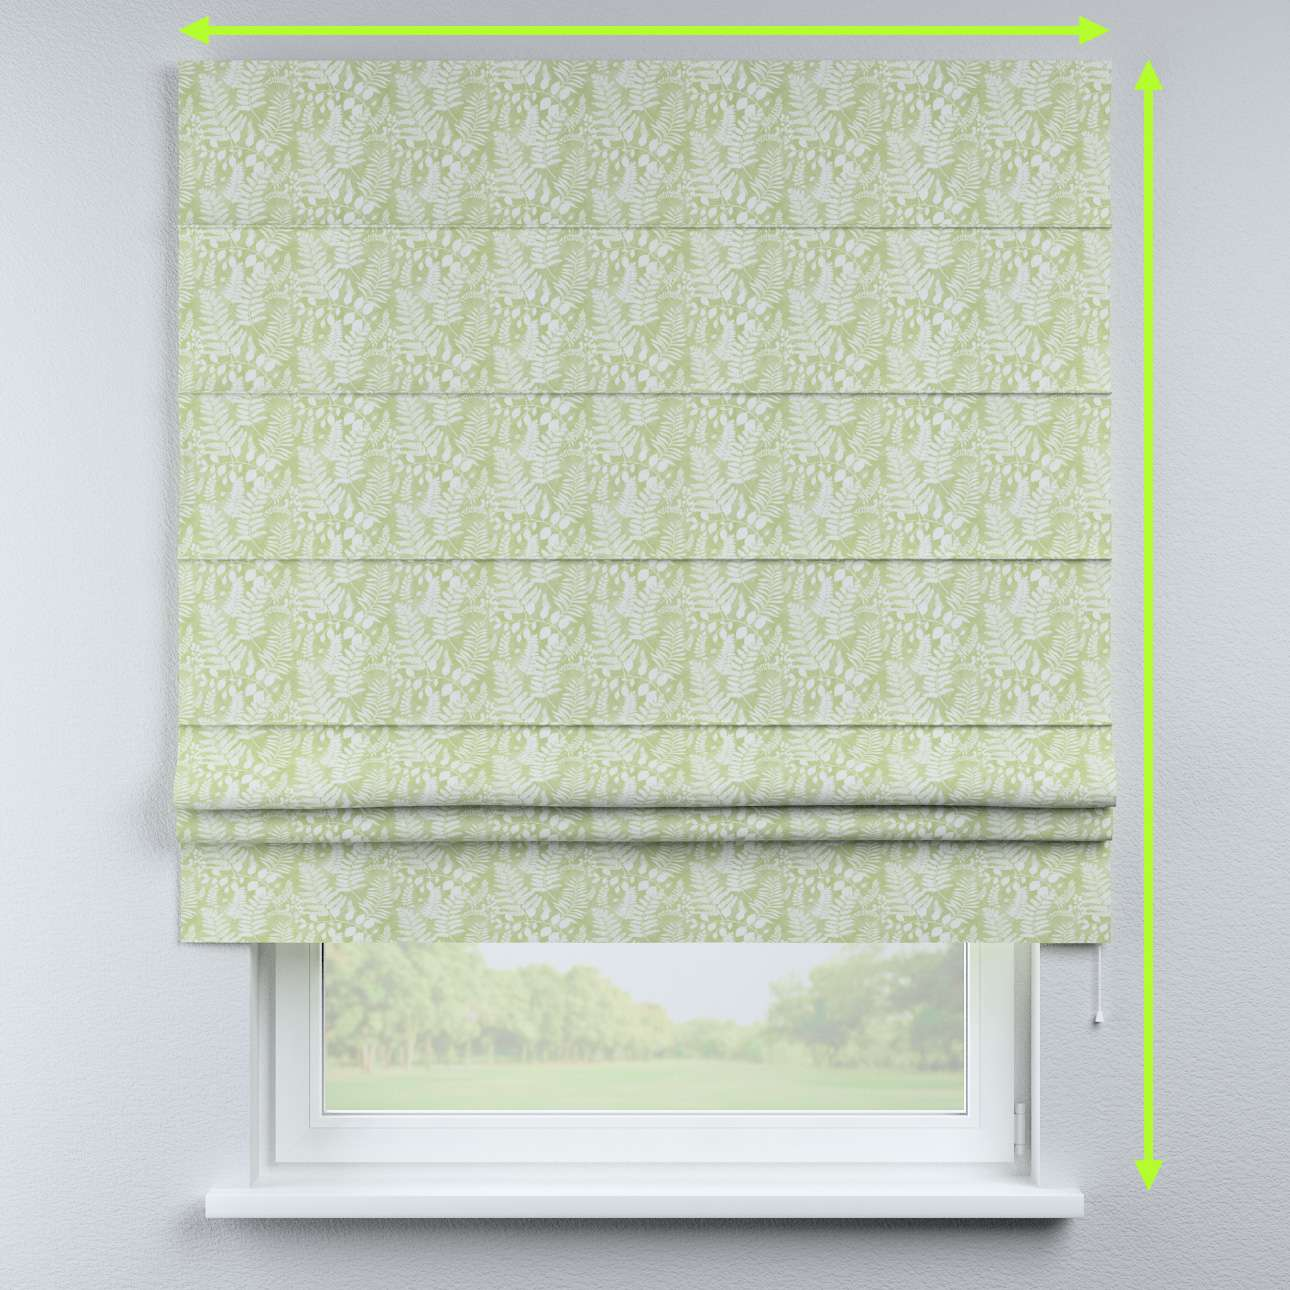 Padva roman blind in collection Pastel Forest, fabric: 142-49